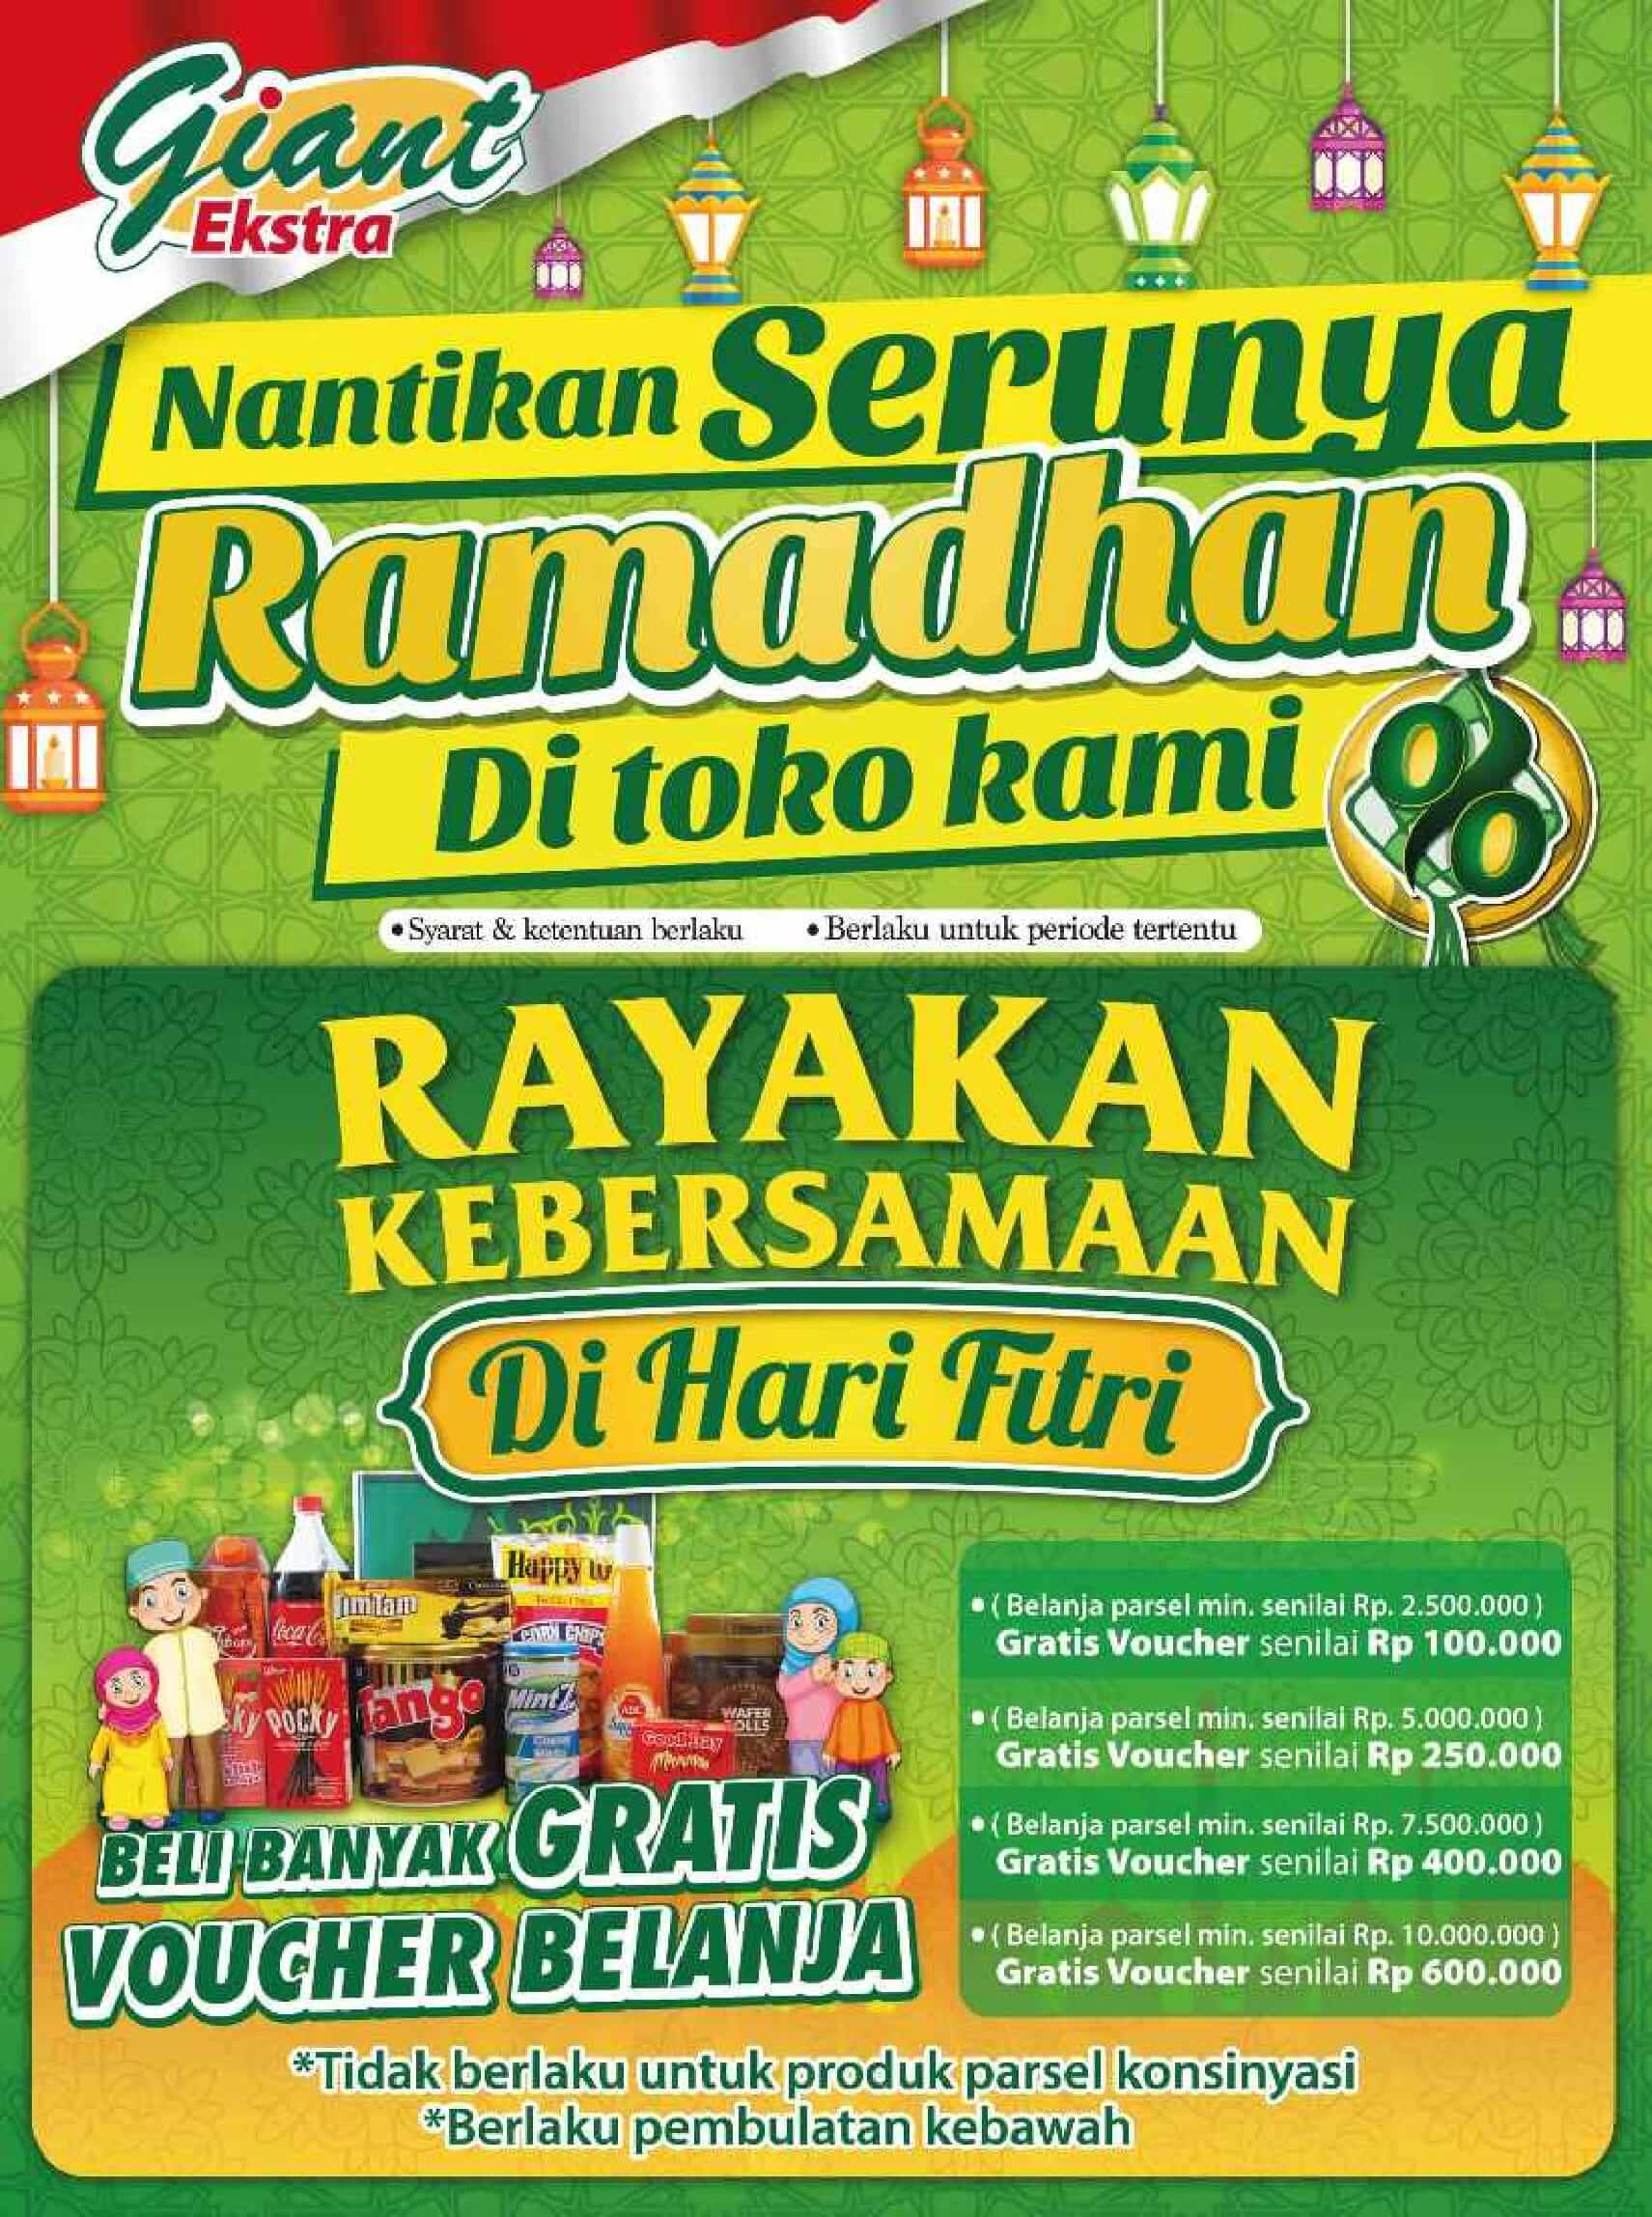 Katalog Giant 26 Apr 8 May Voucher Rp 100000 Type To Search Item In This Catalogue